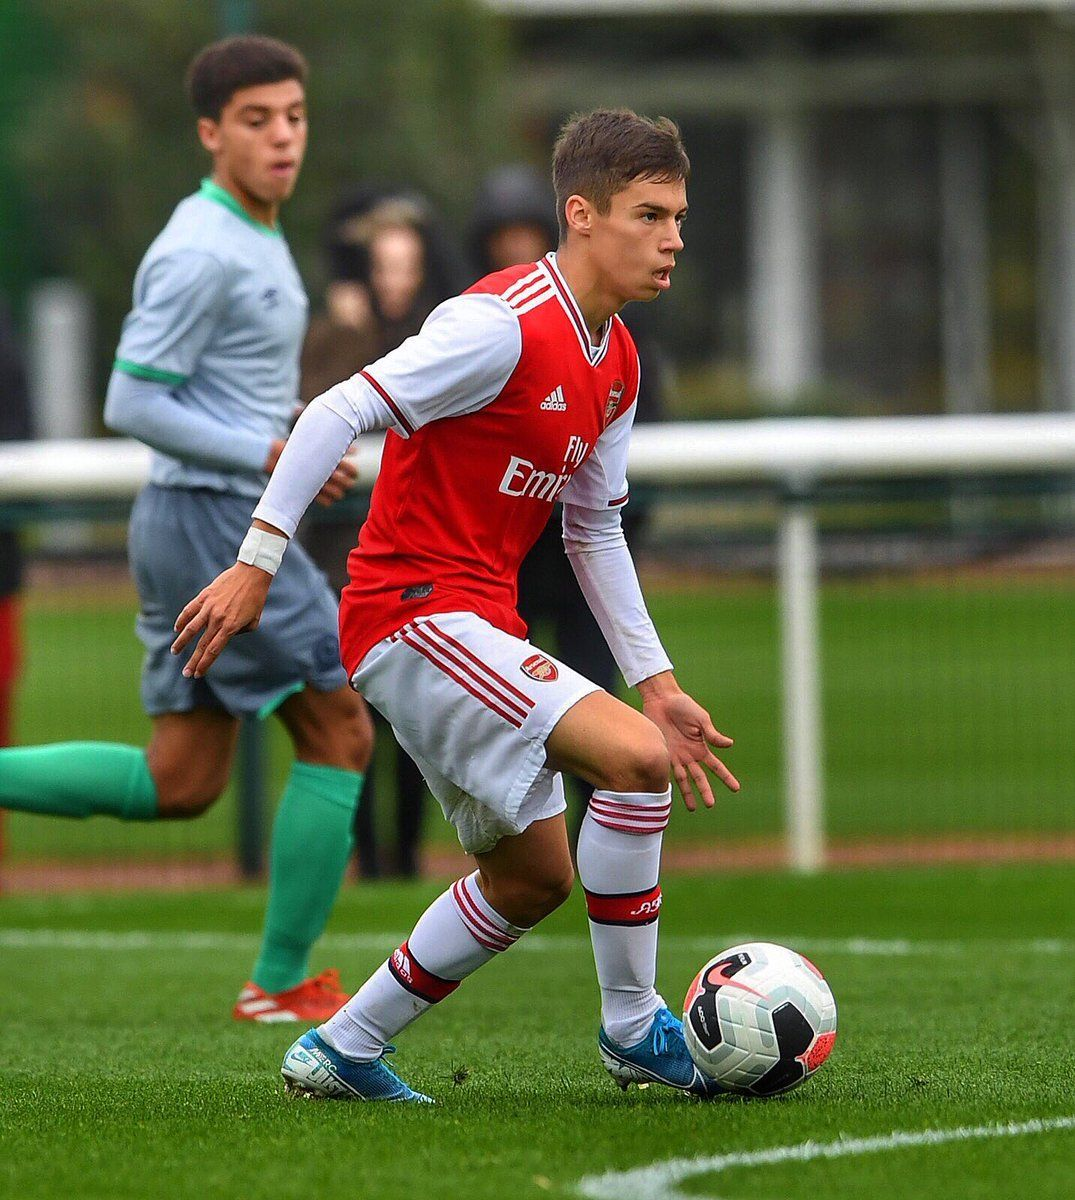 Catalin Cirjan Arsenal Youngster Signs First Professional